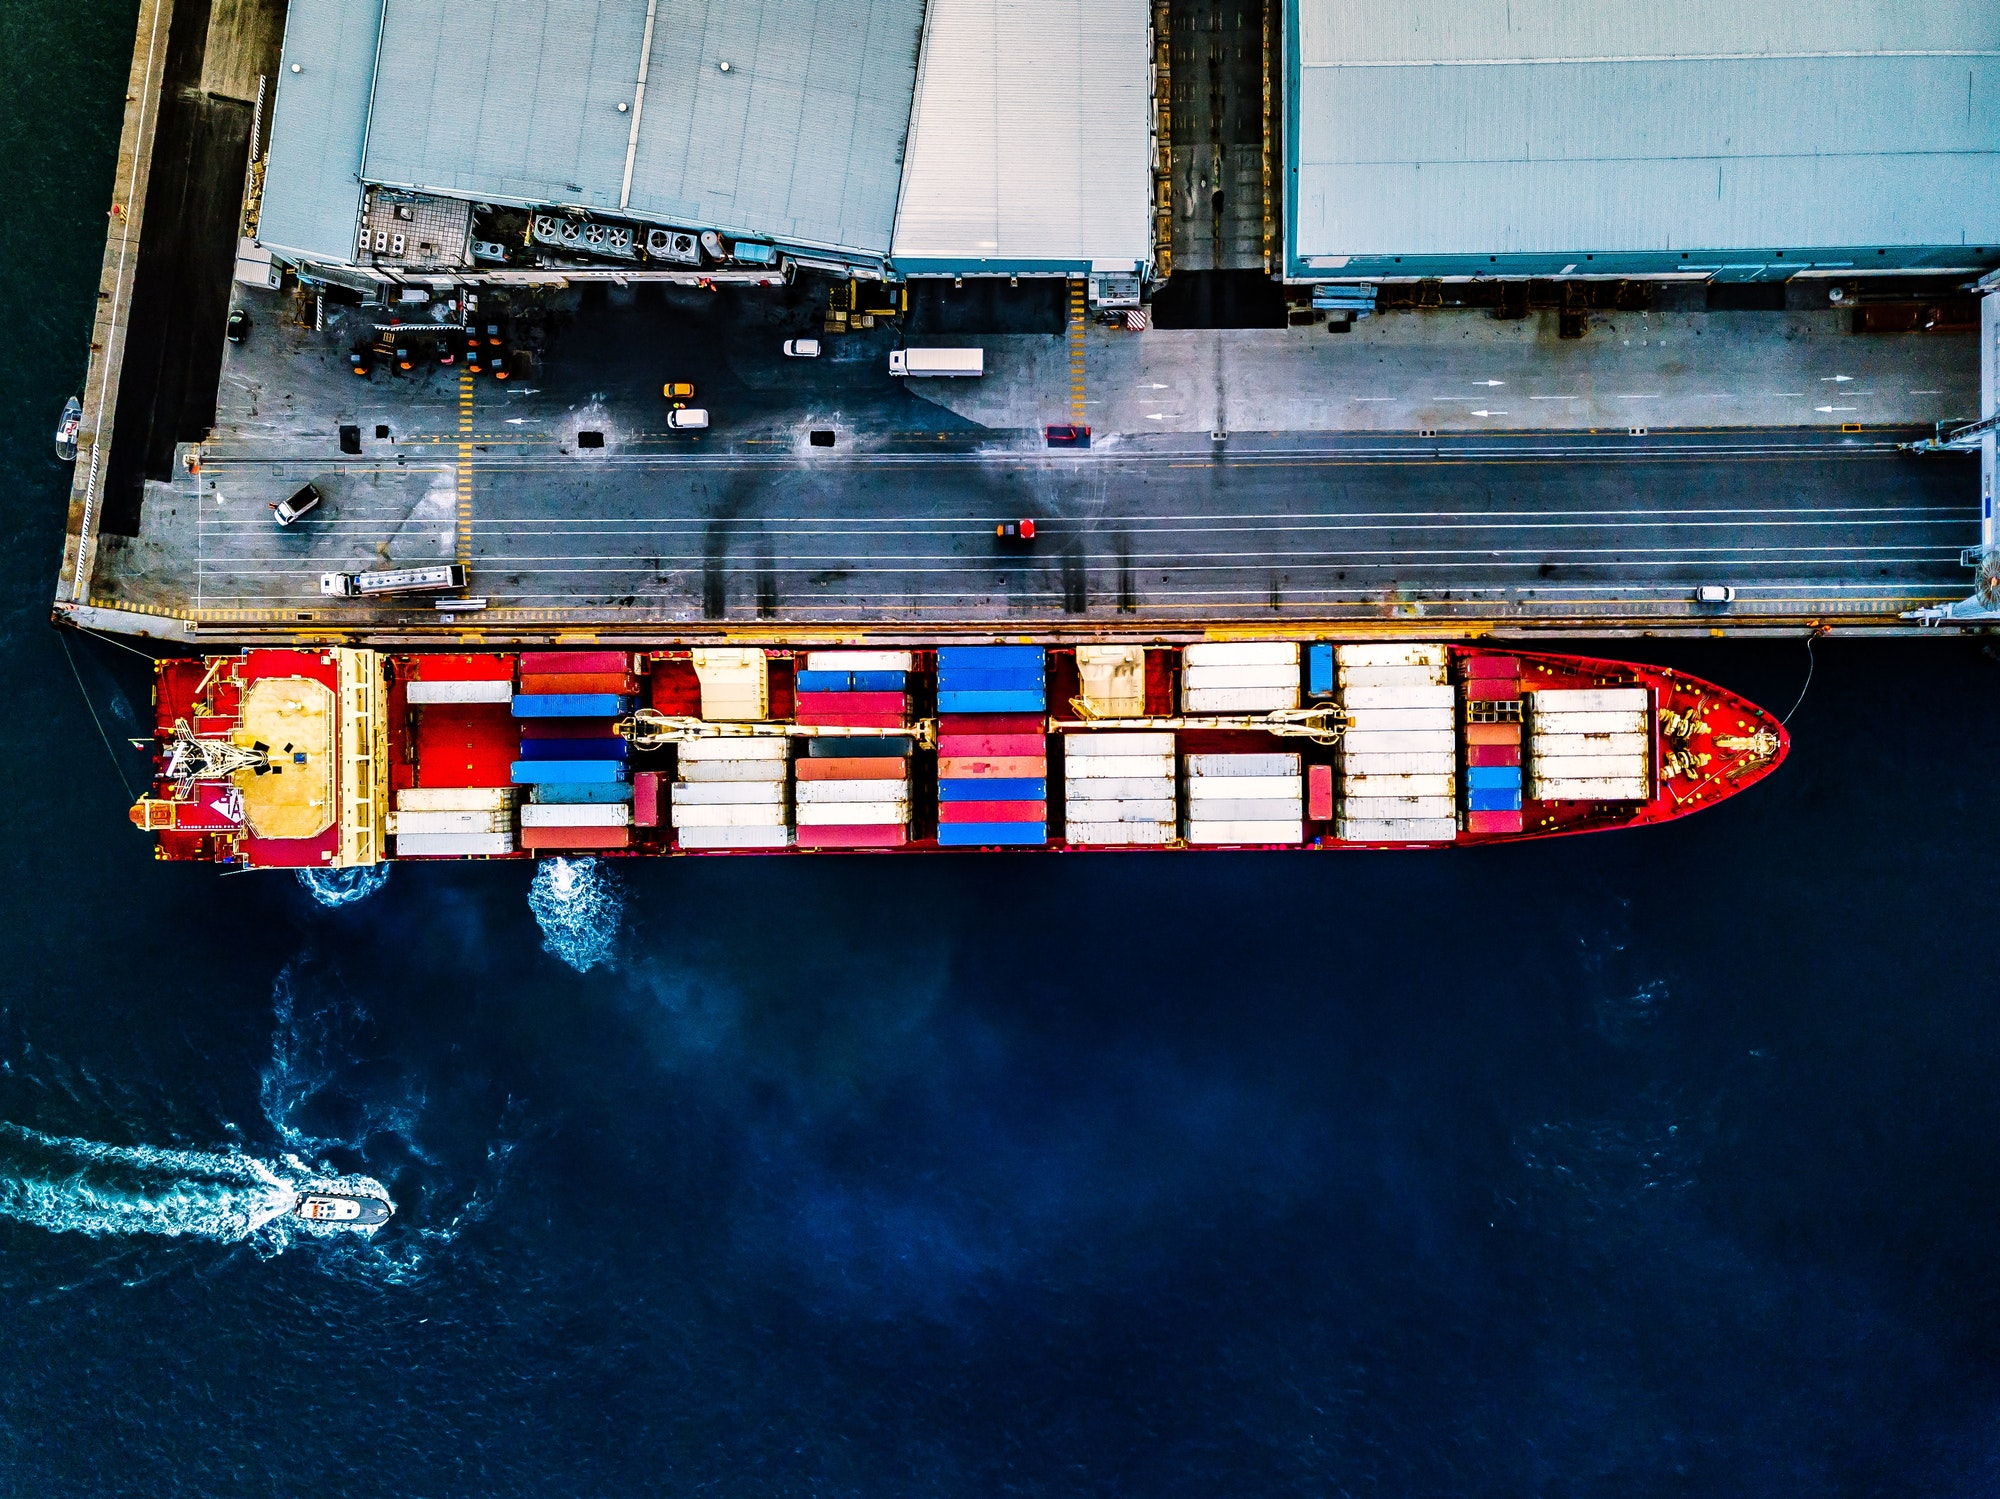 Aerial view of container ship at sea port